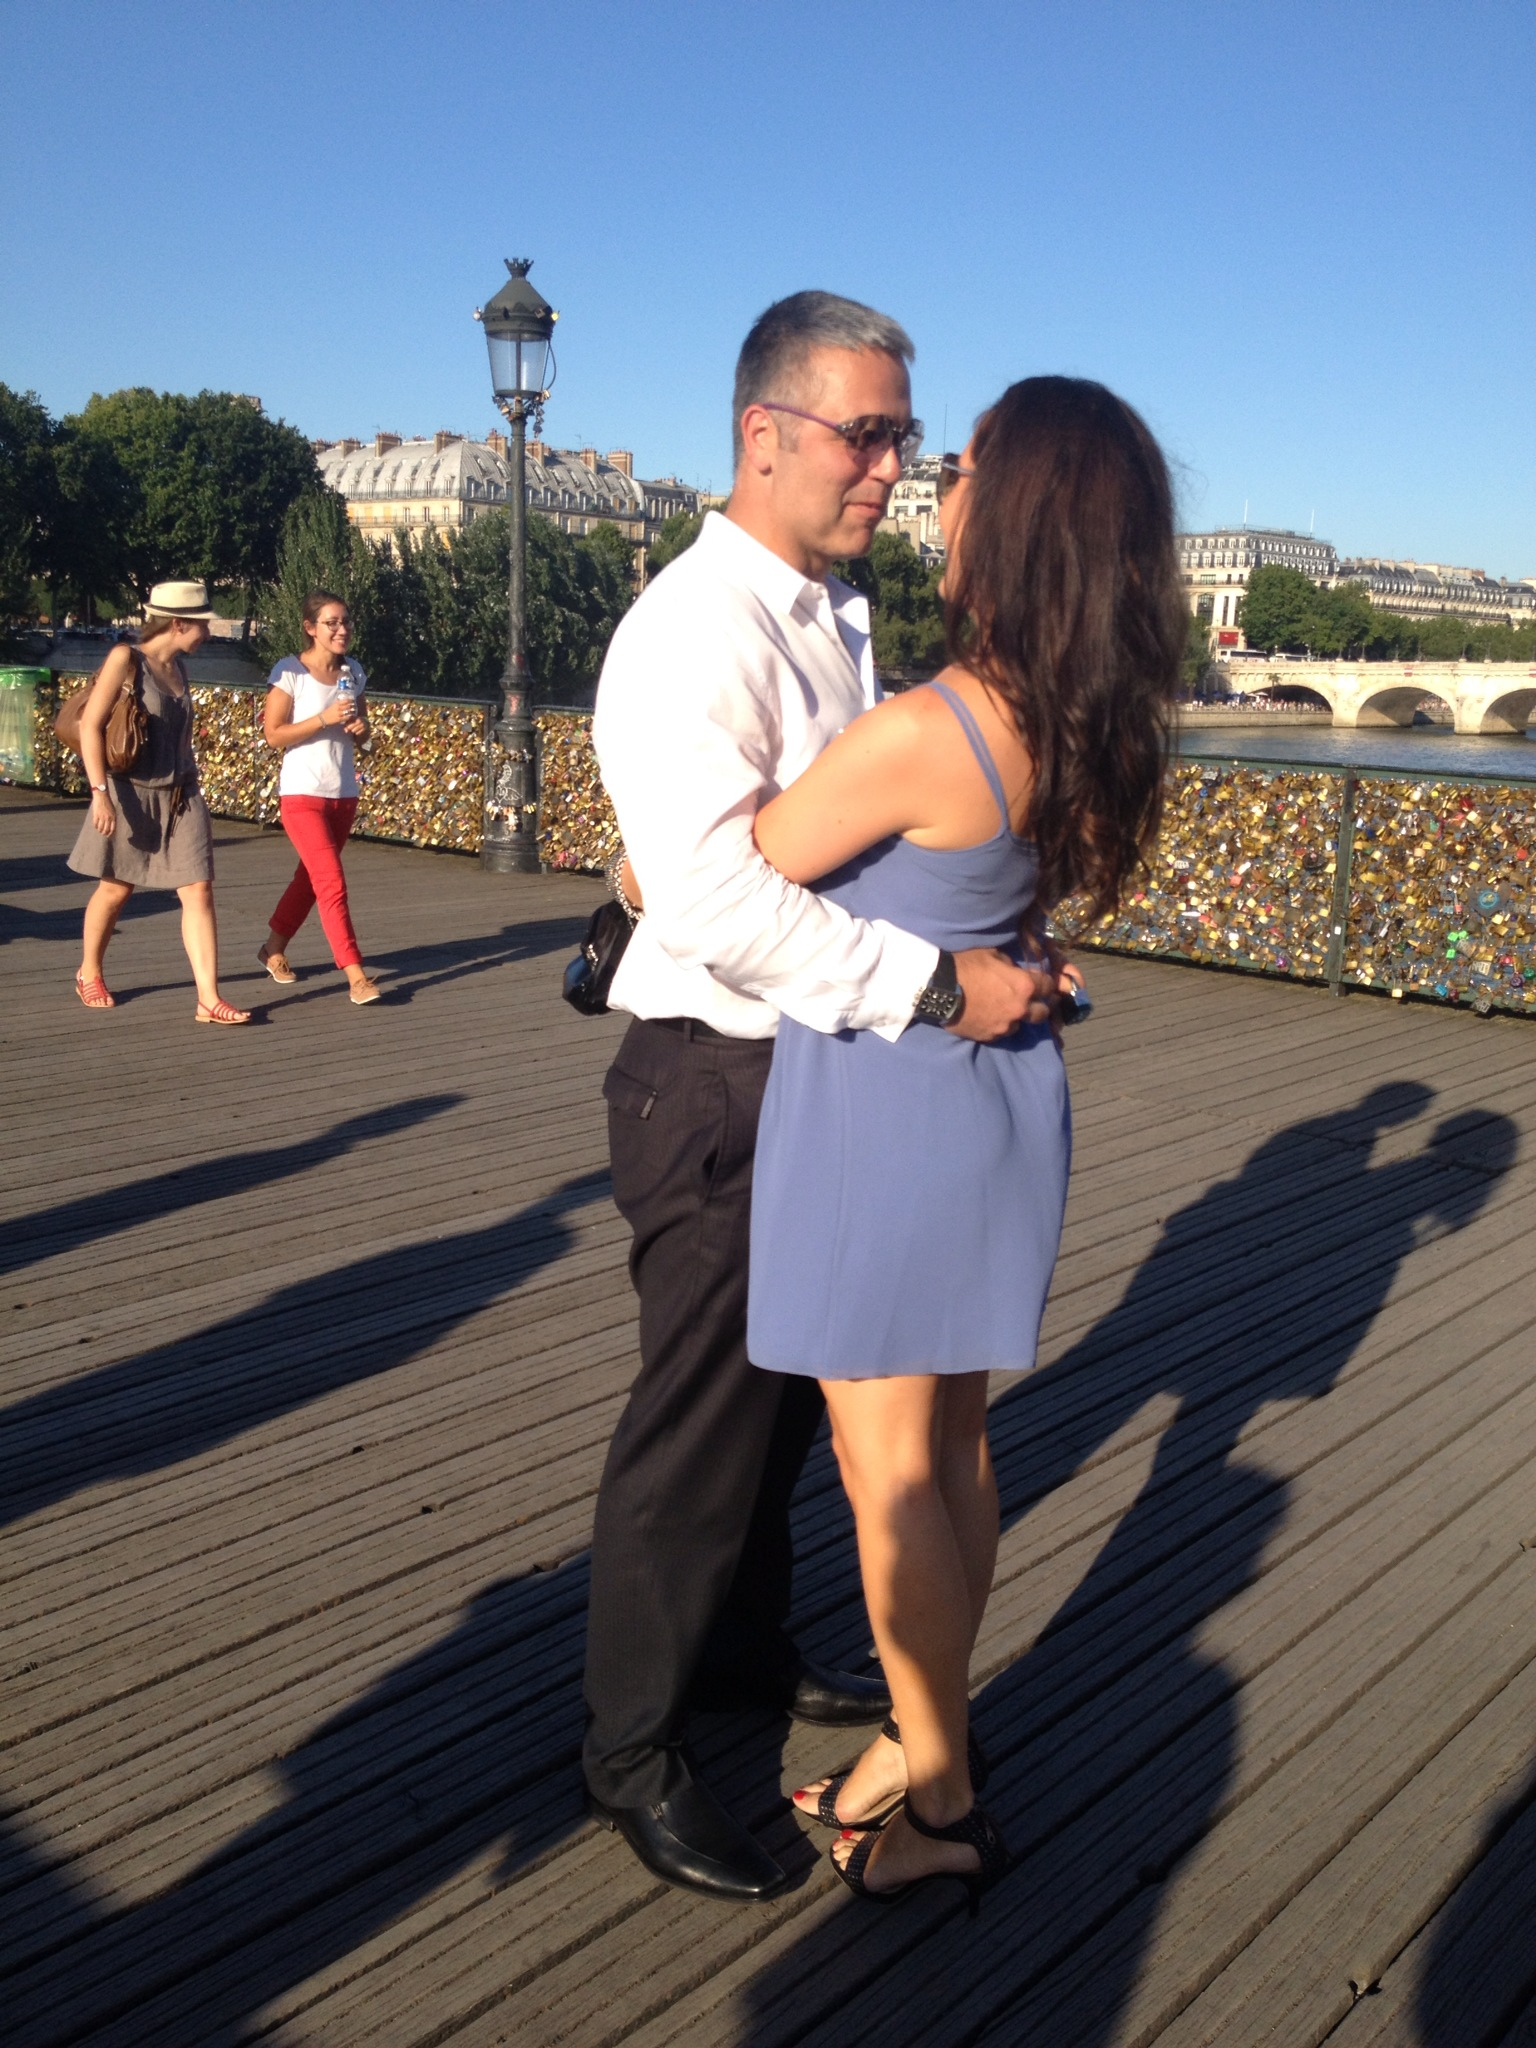 Image 2 of Erica and Doug | Proposal in Paris